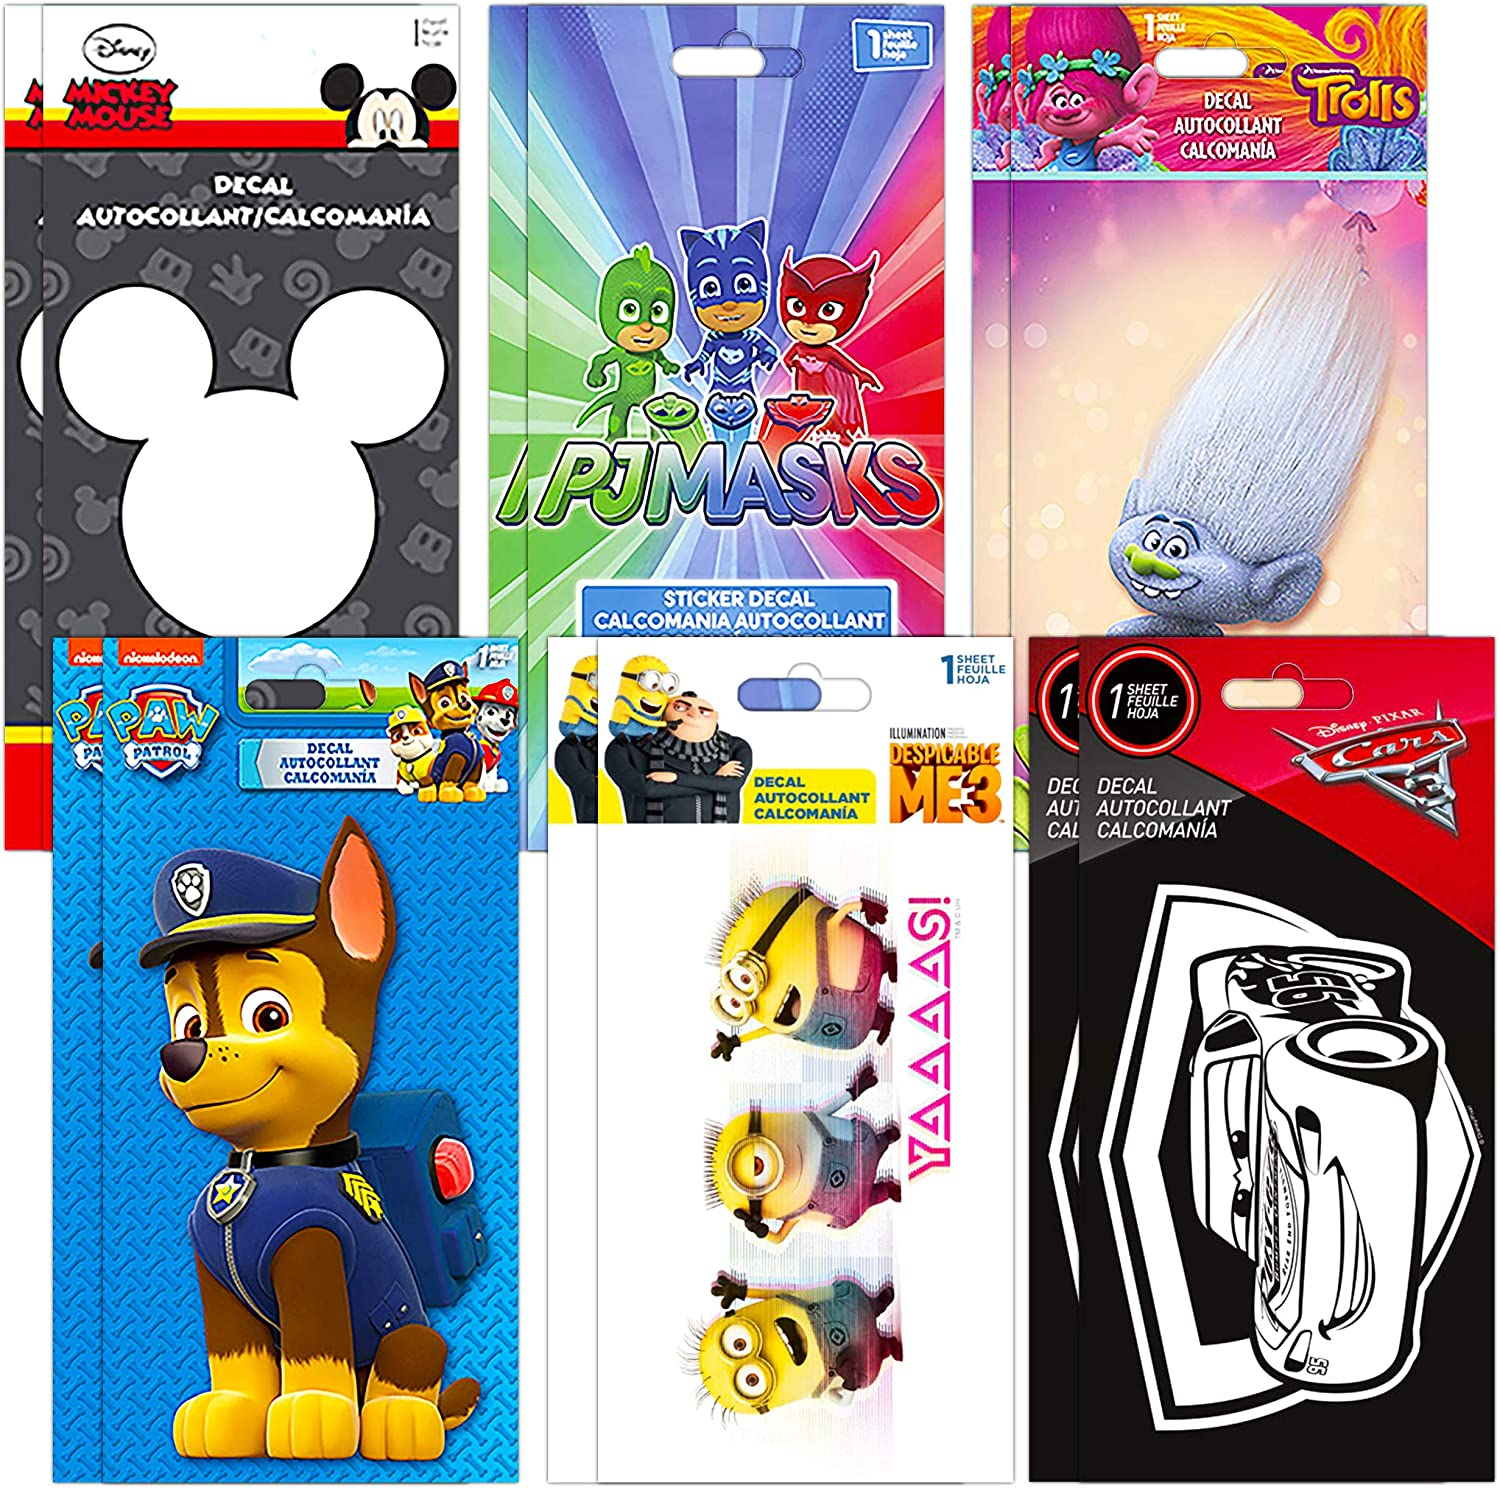 Ultimate Kids Sticker Bundle Set for Boys Girls - Premium 12 Pack Decal Stickers Featuring Paw Patrol, Despicable Me, Disney Cars, Trolls, PJ Mask, Mickey Mouse (Party Favors Room Decor)